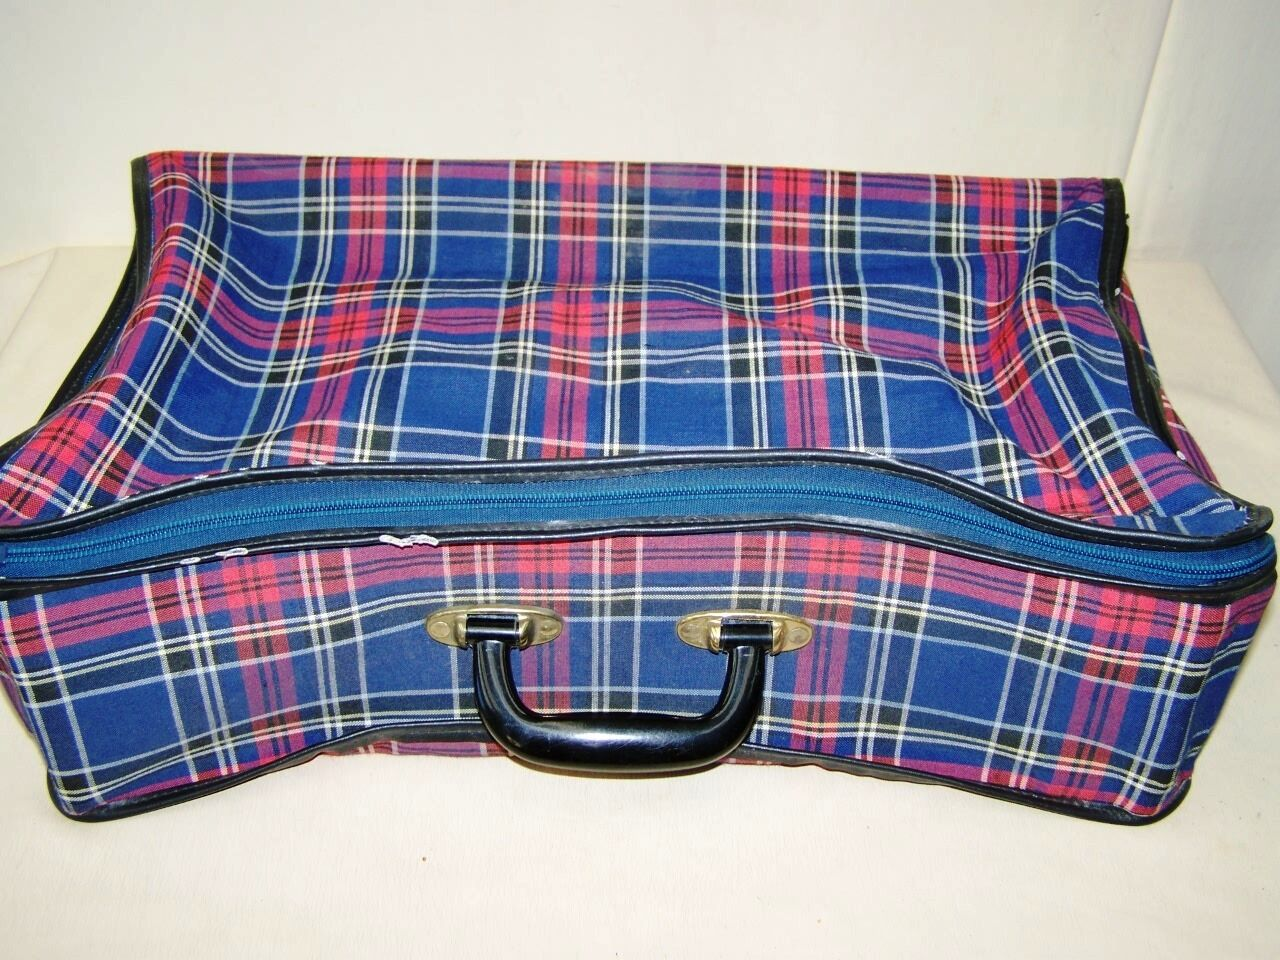 Old Suitcase,Folding suitcase Travel cases 1950s Years,Iconic,Retro Design,Check